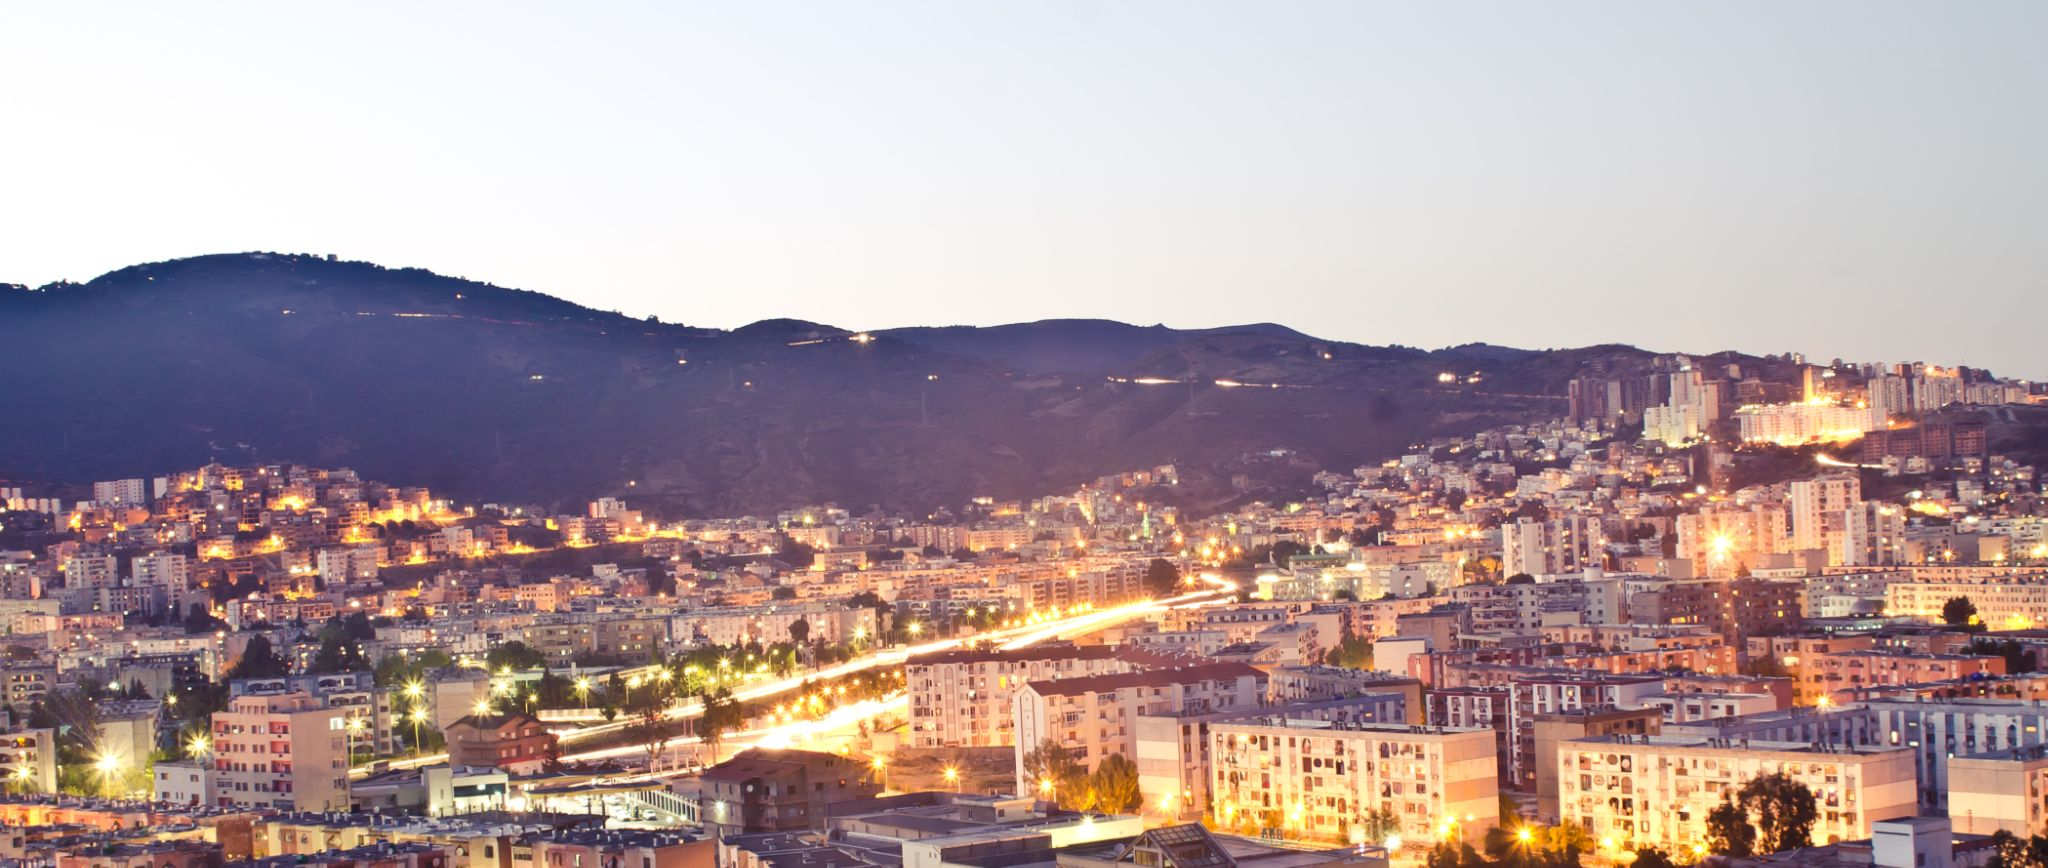 annaba in the night by sn2op23i